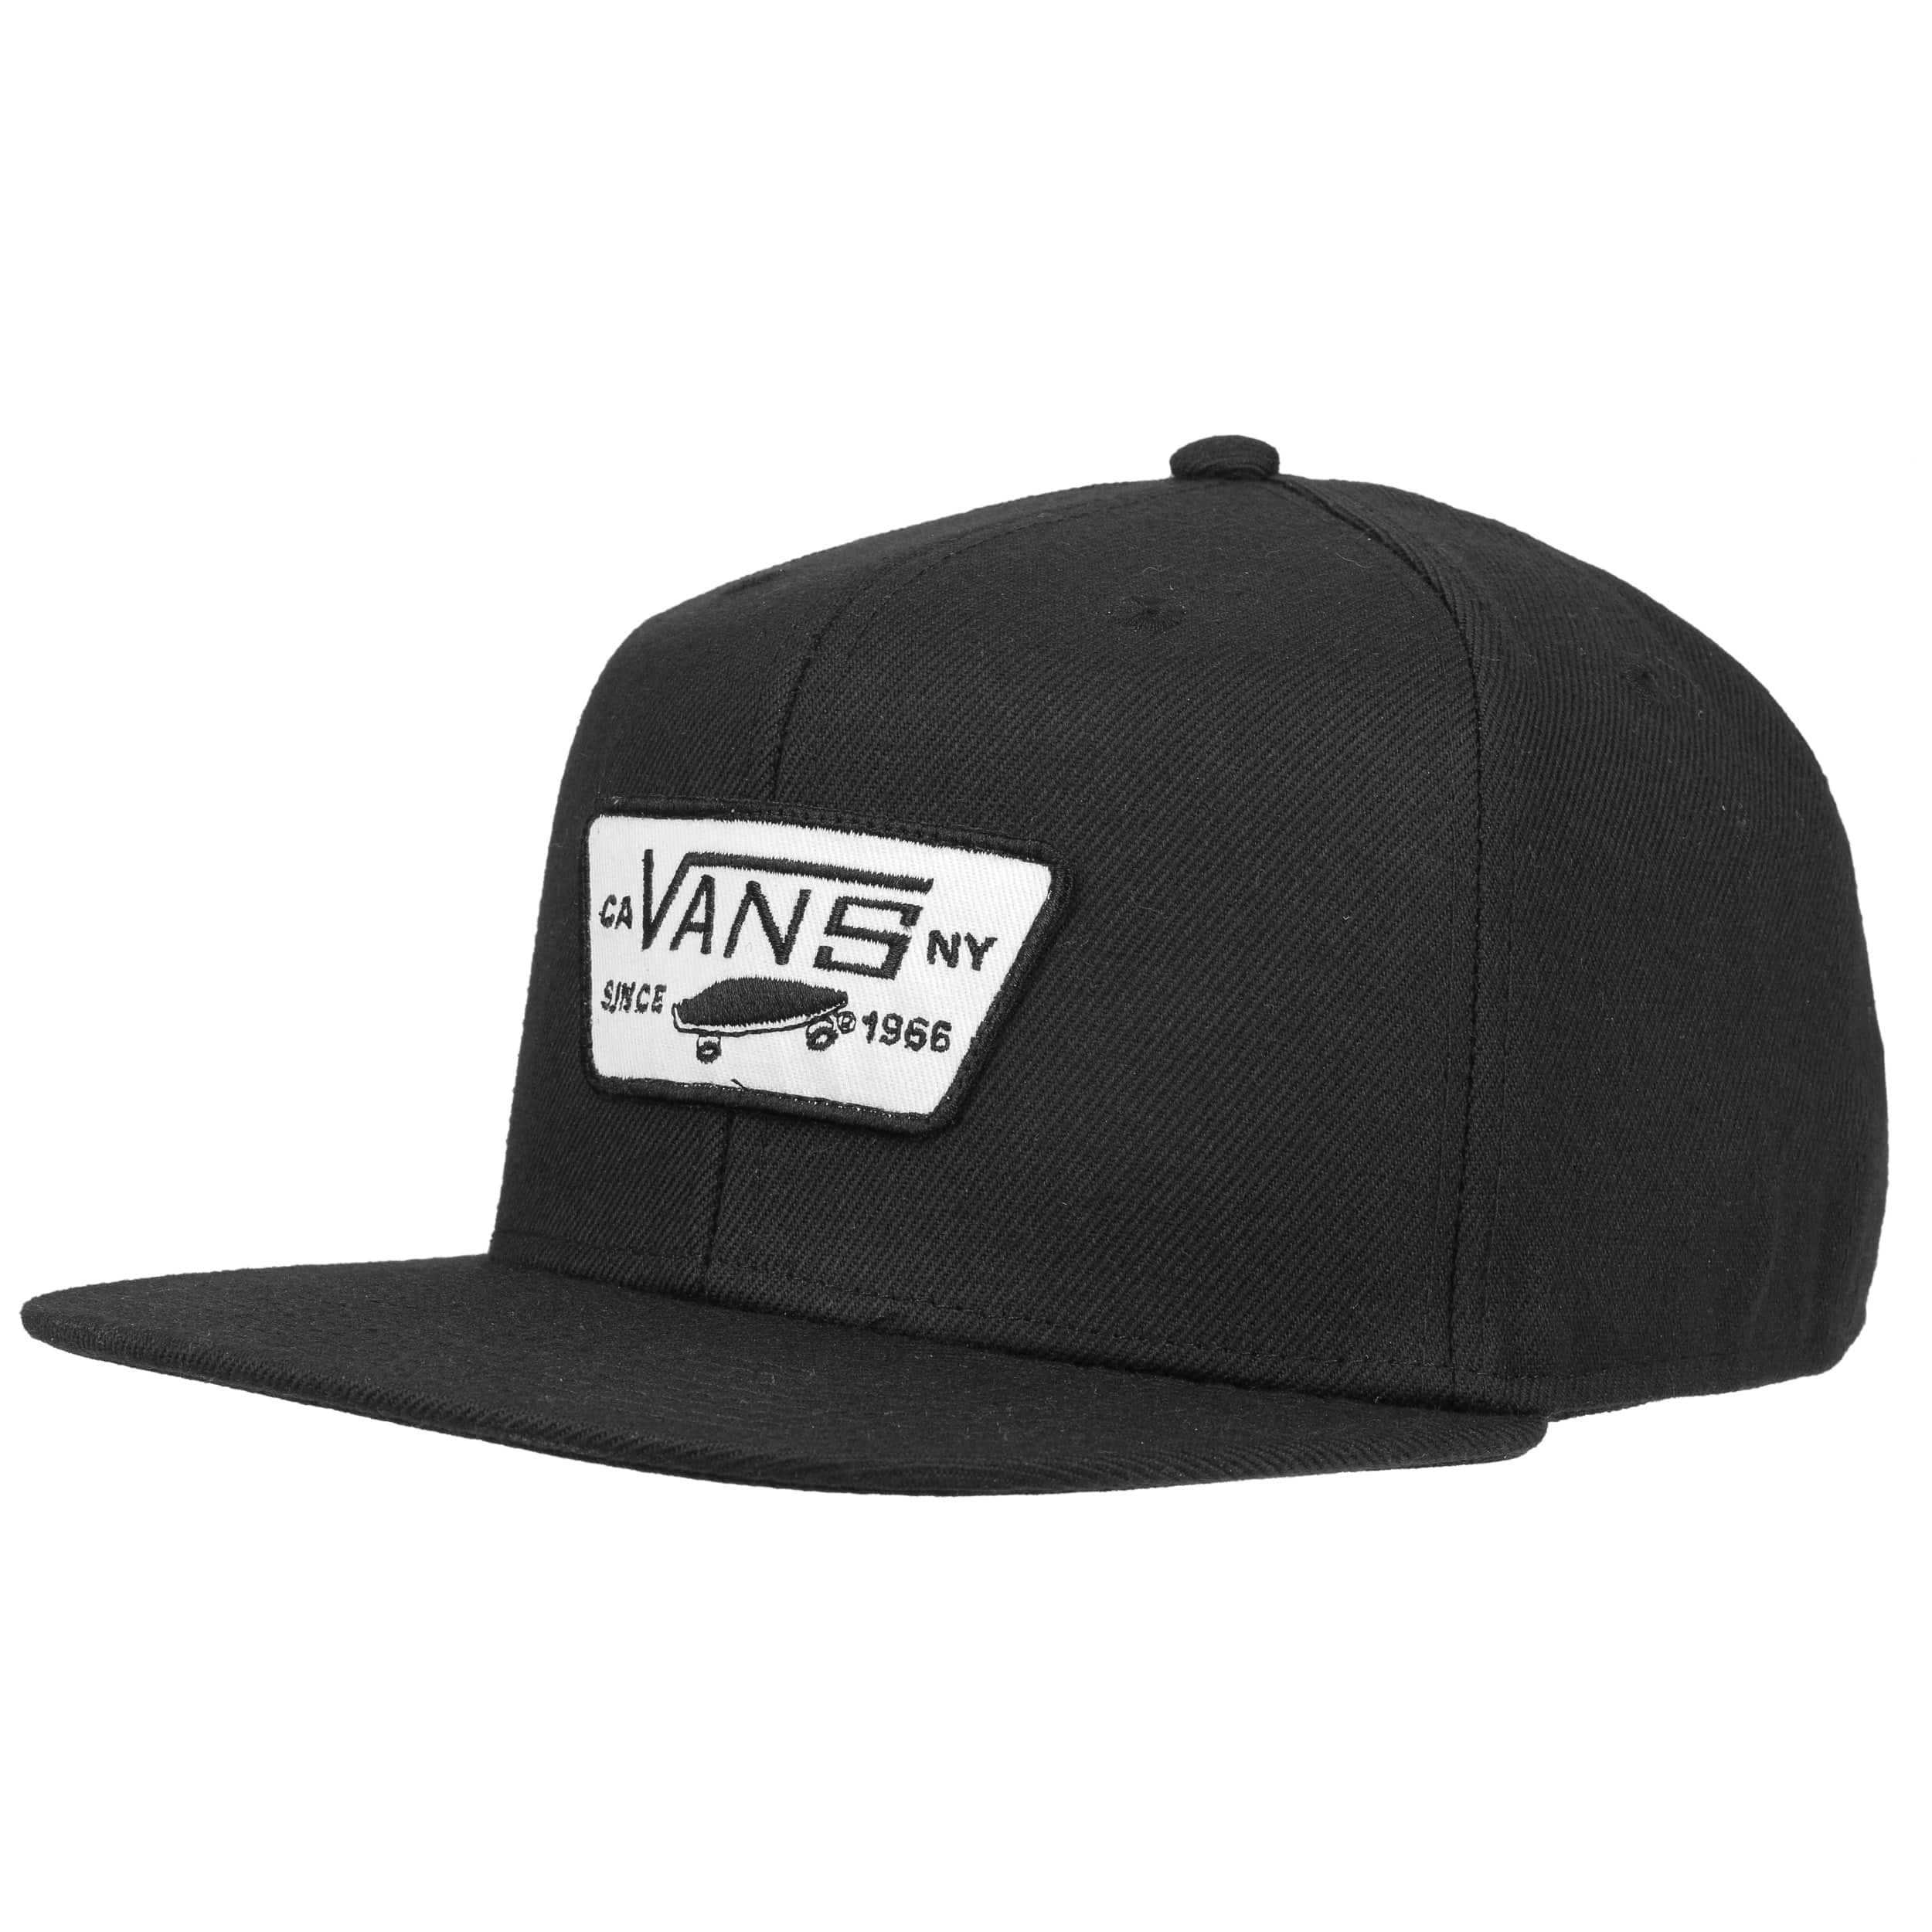 881a3ceb29 ... 4 · Full Patch 2017 Snapback Cap by Vans - black-white 5 ...